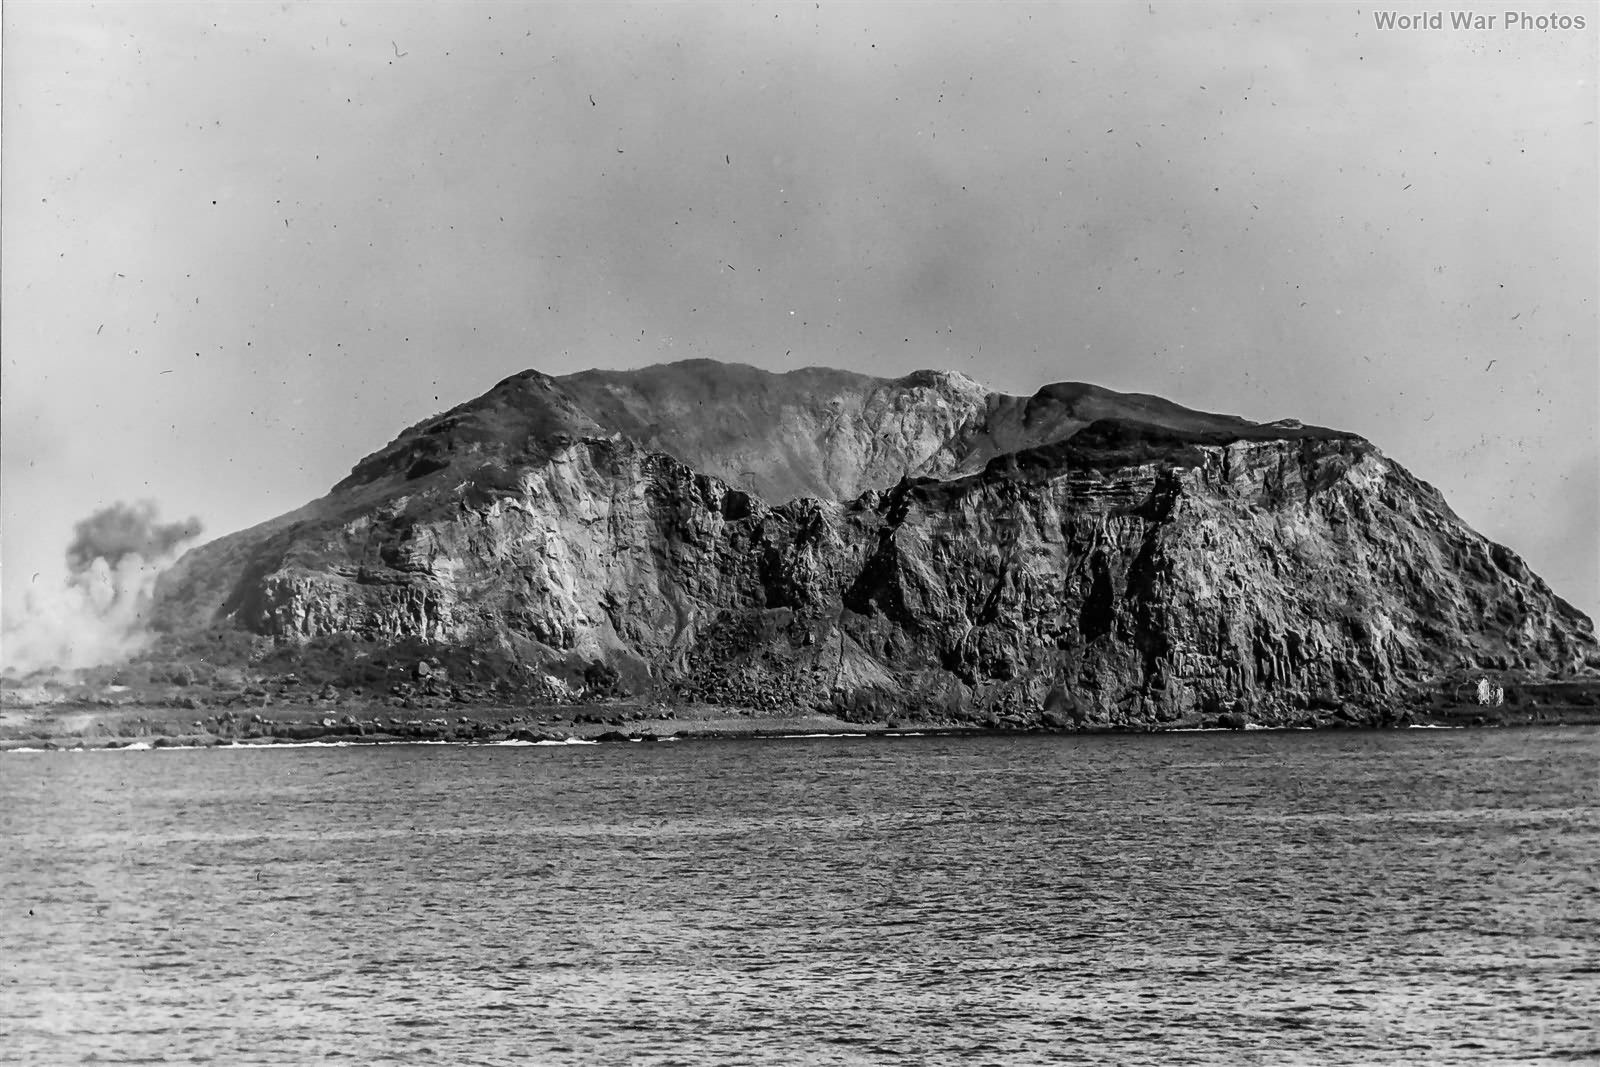 Mt Suribachi from the viewpoint of the Arkansas during the Battle of Iwo Jima